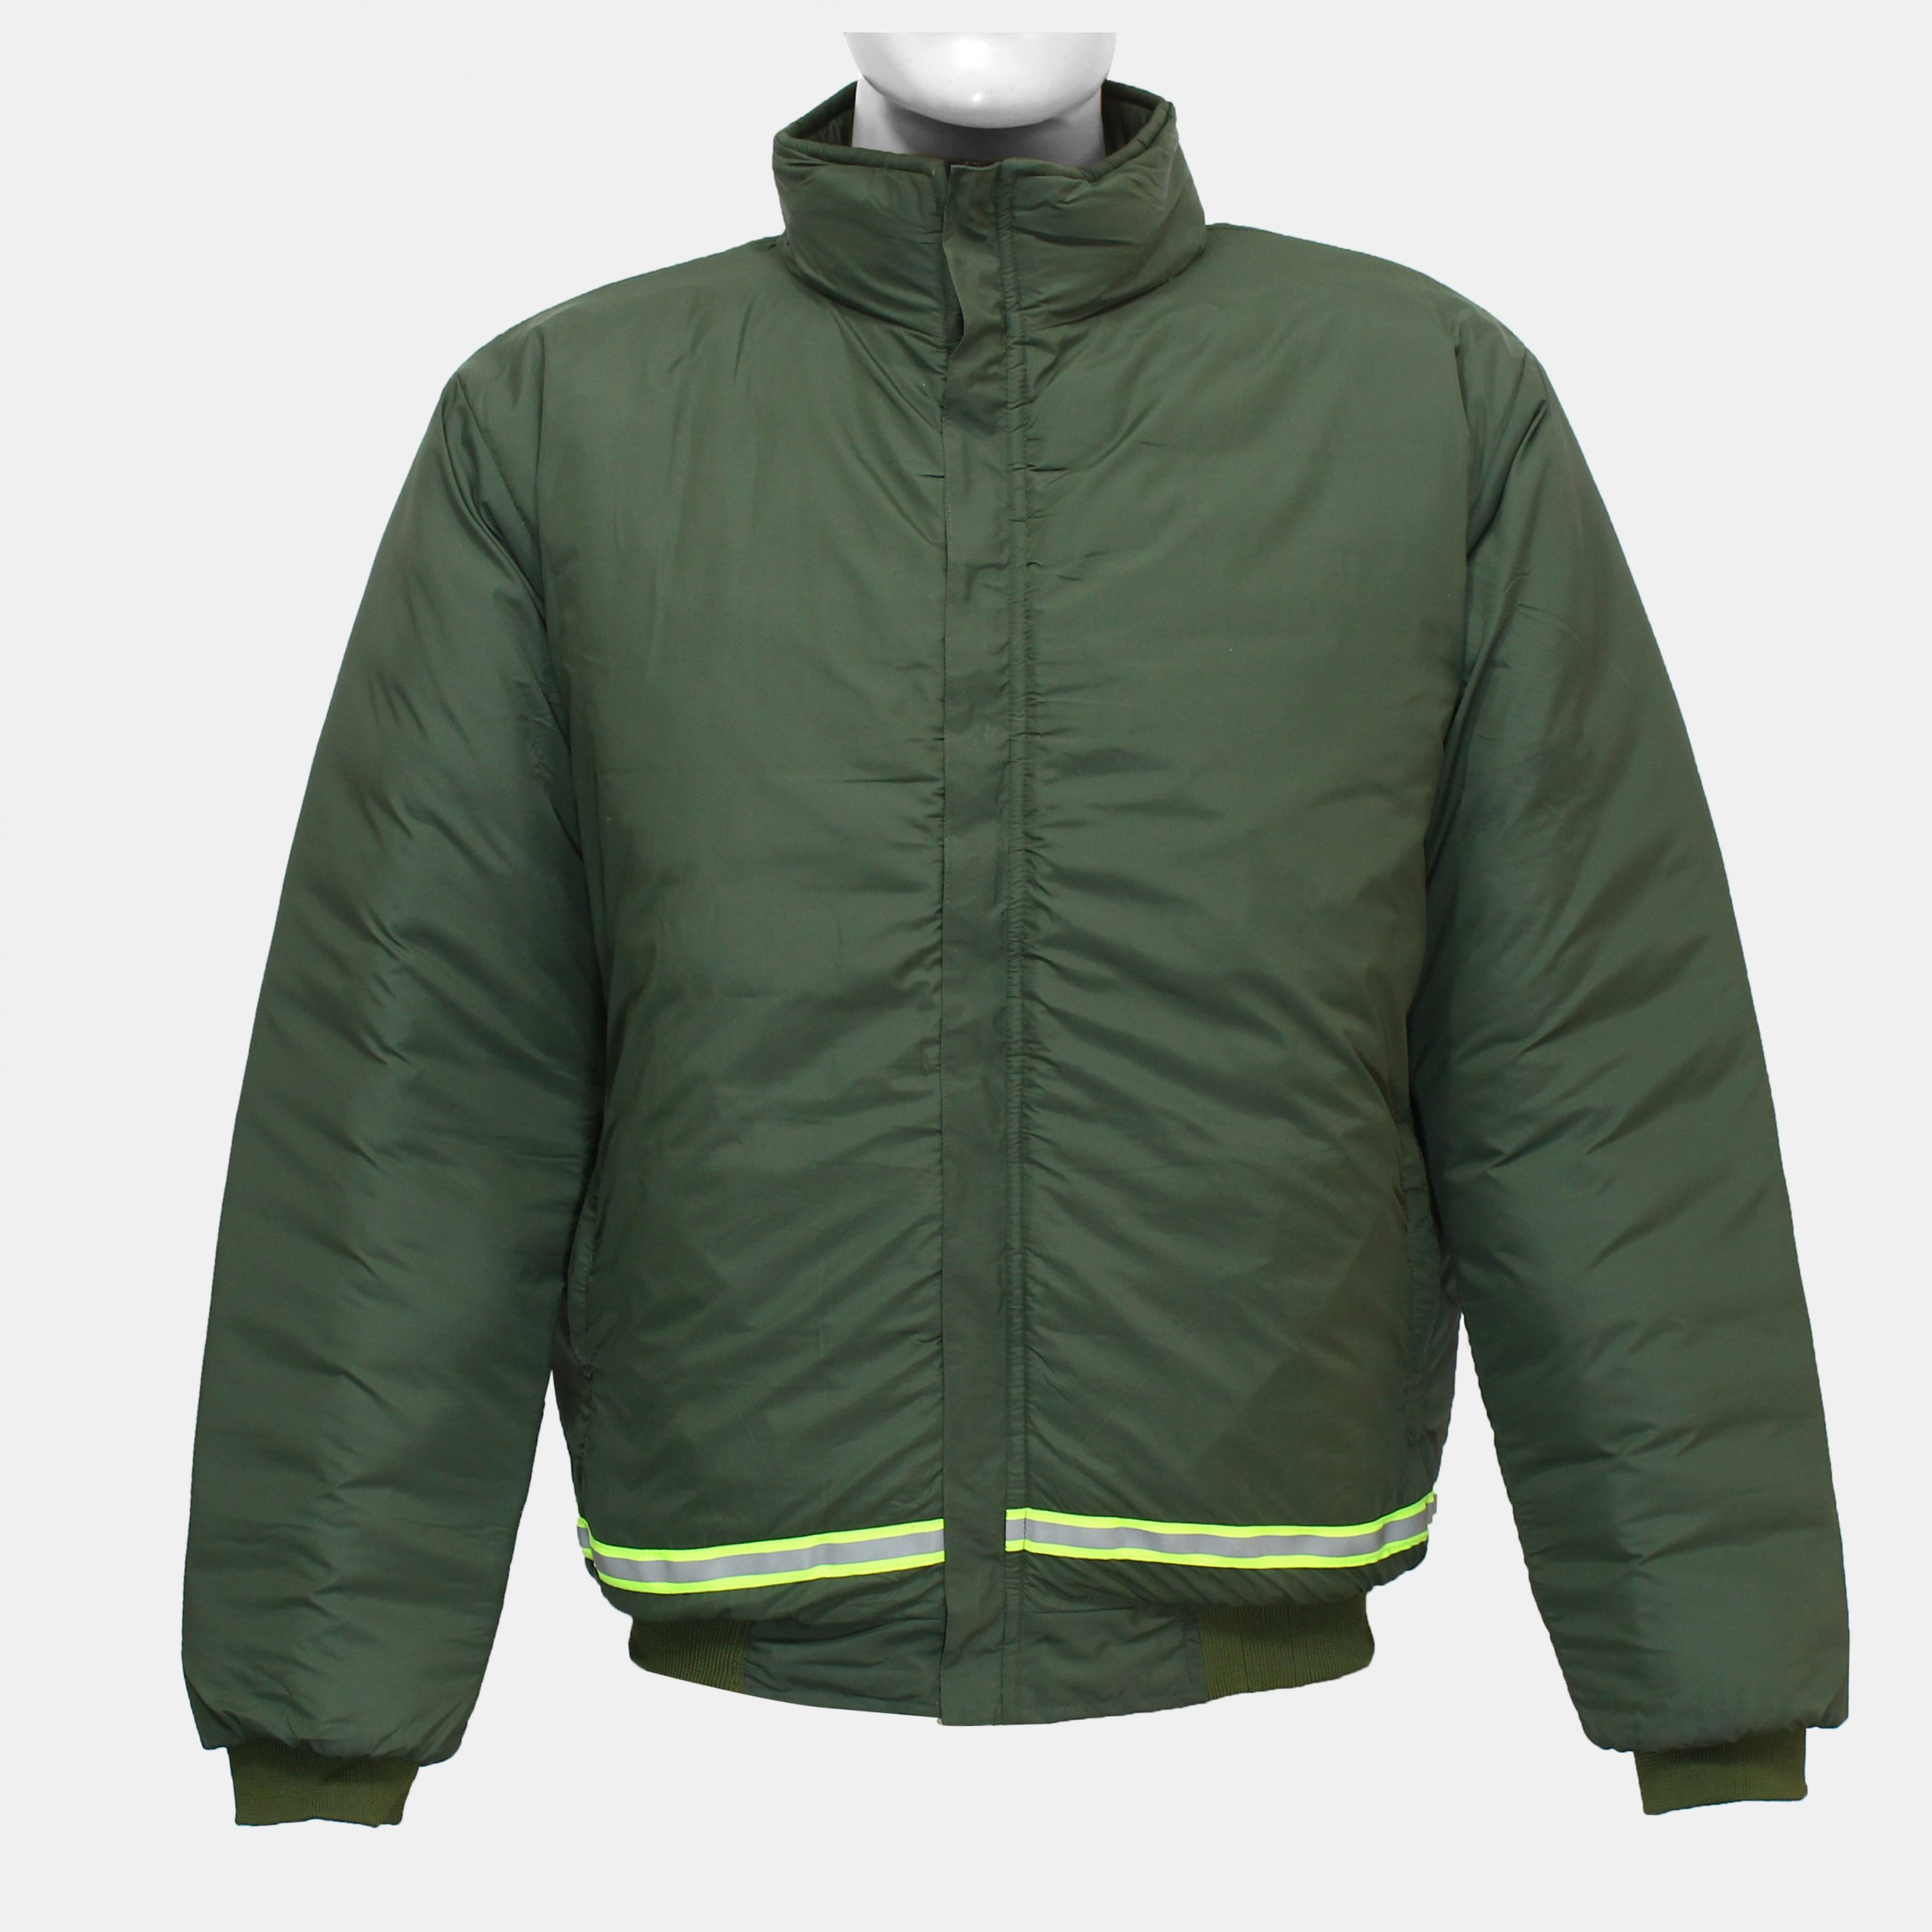 SECURITY JACKET| FACTORY DIRECT